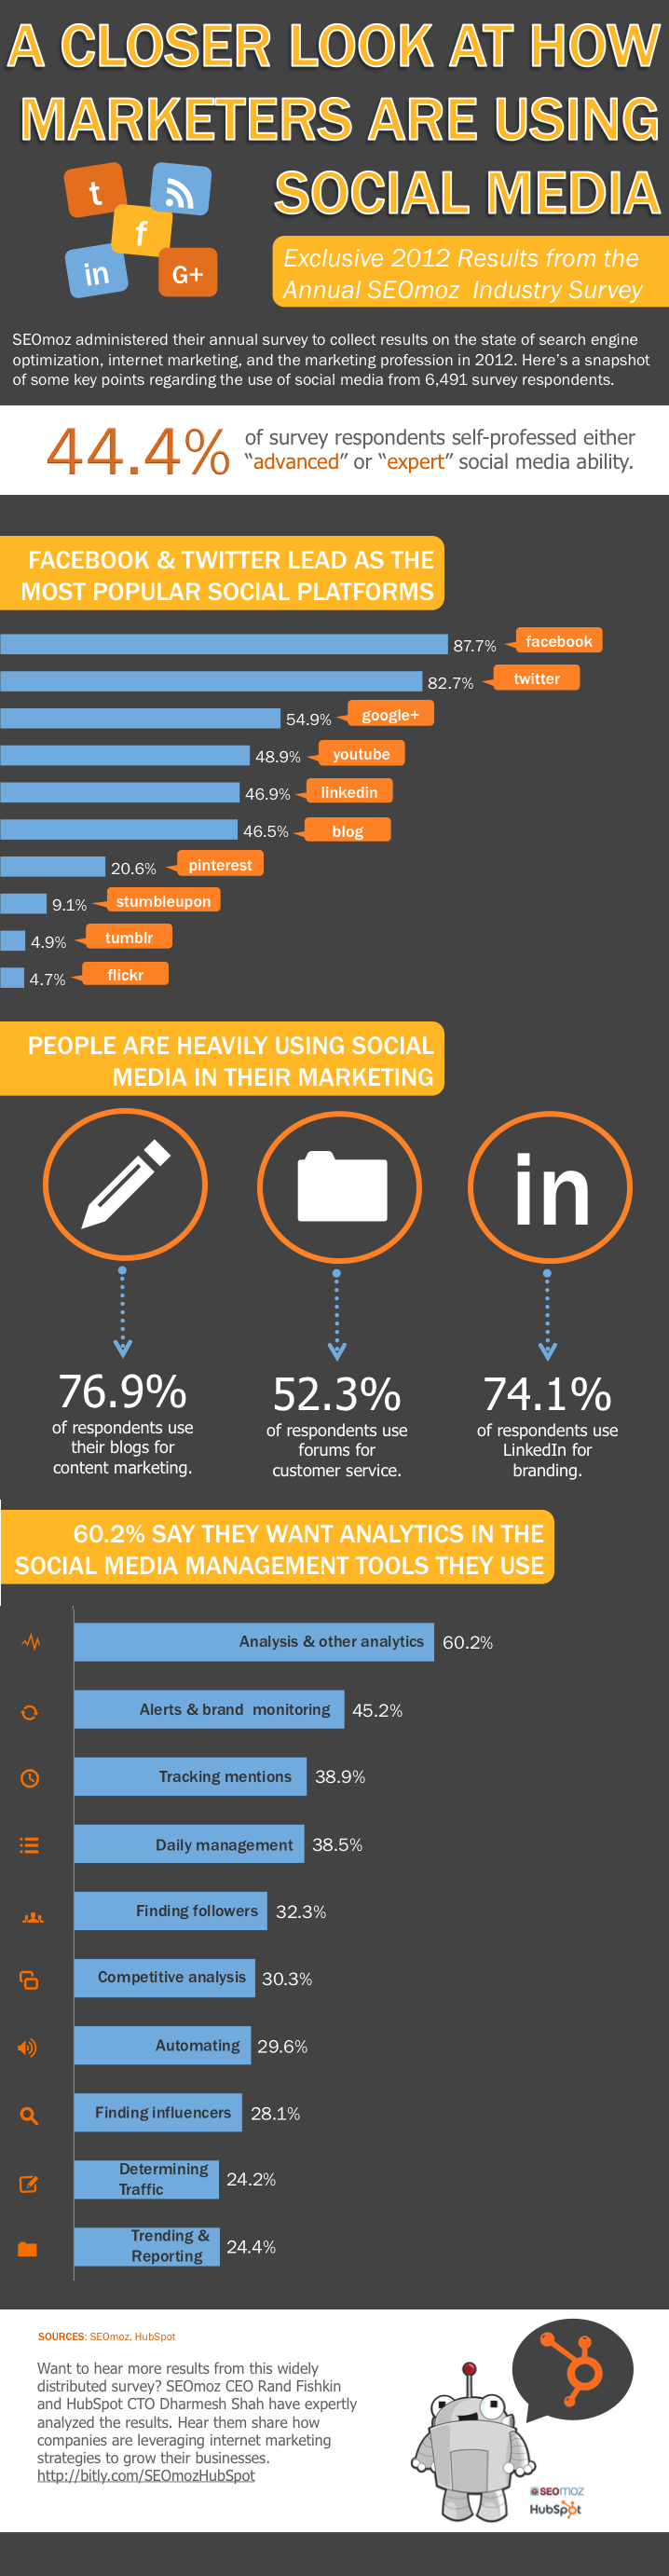 How Marketers Are Using Social Media in 2012